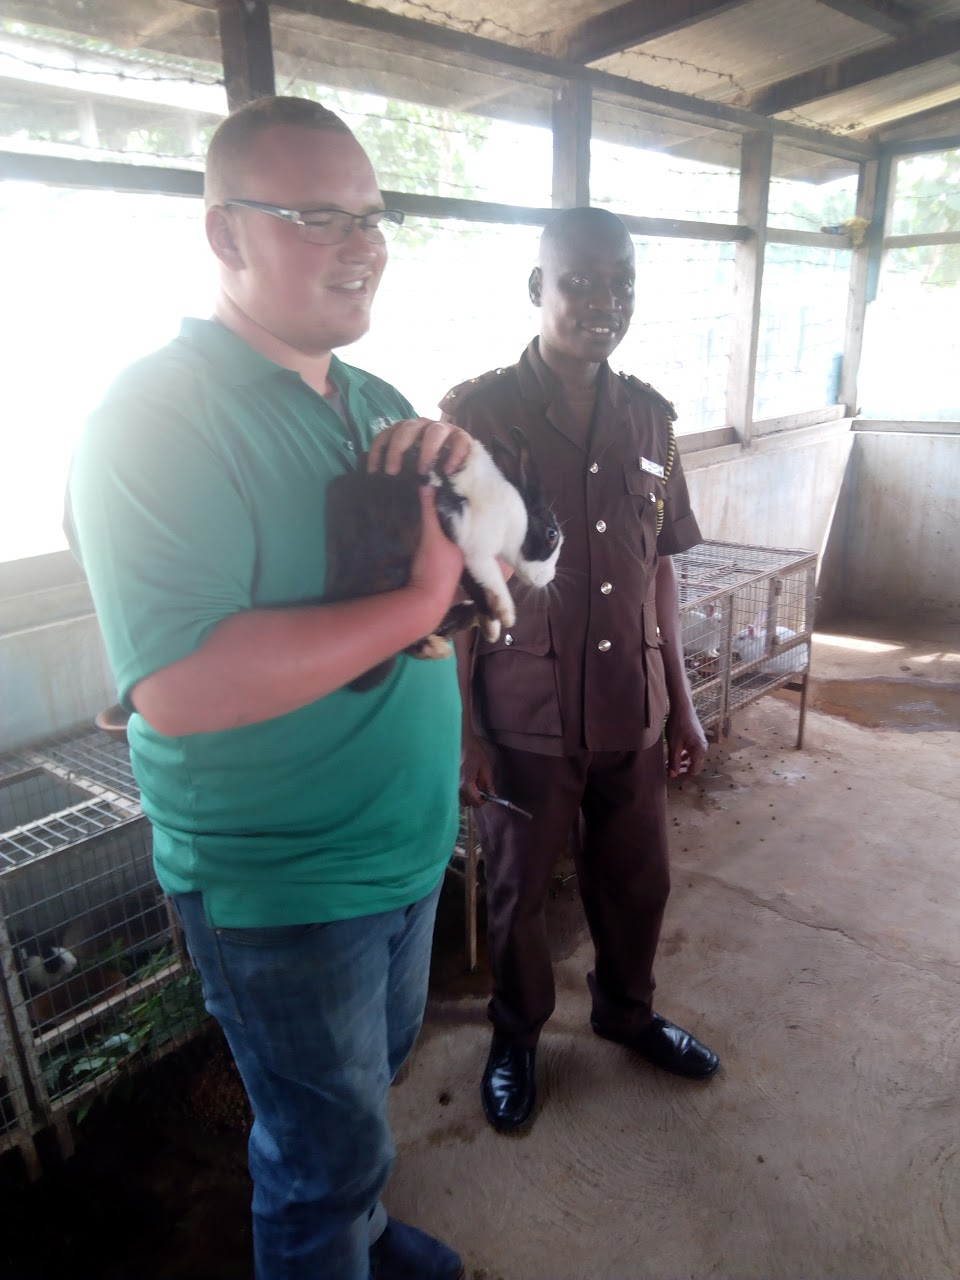 staff member and prison officer hold rabbits